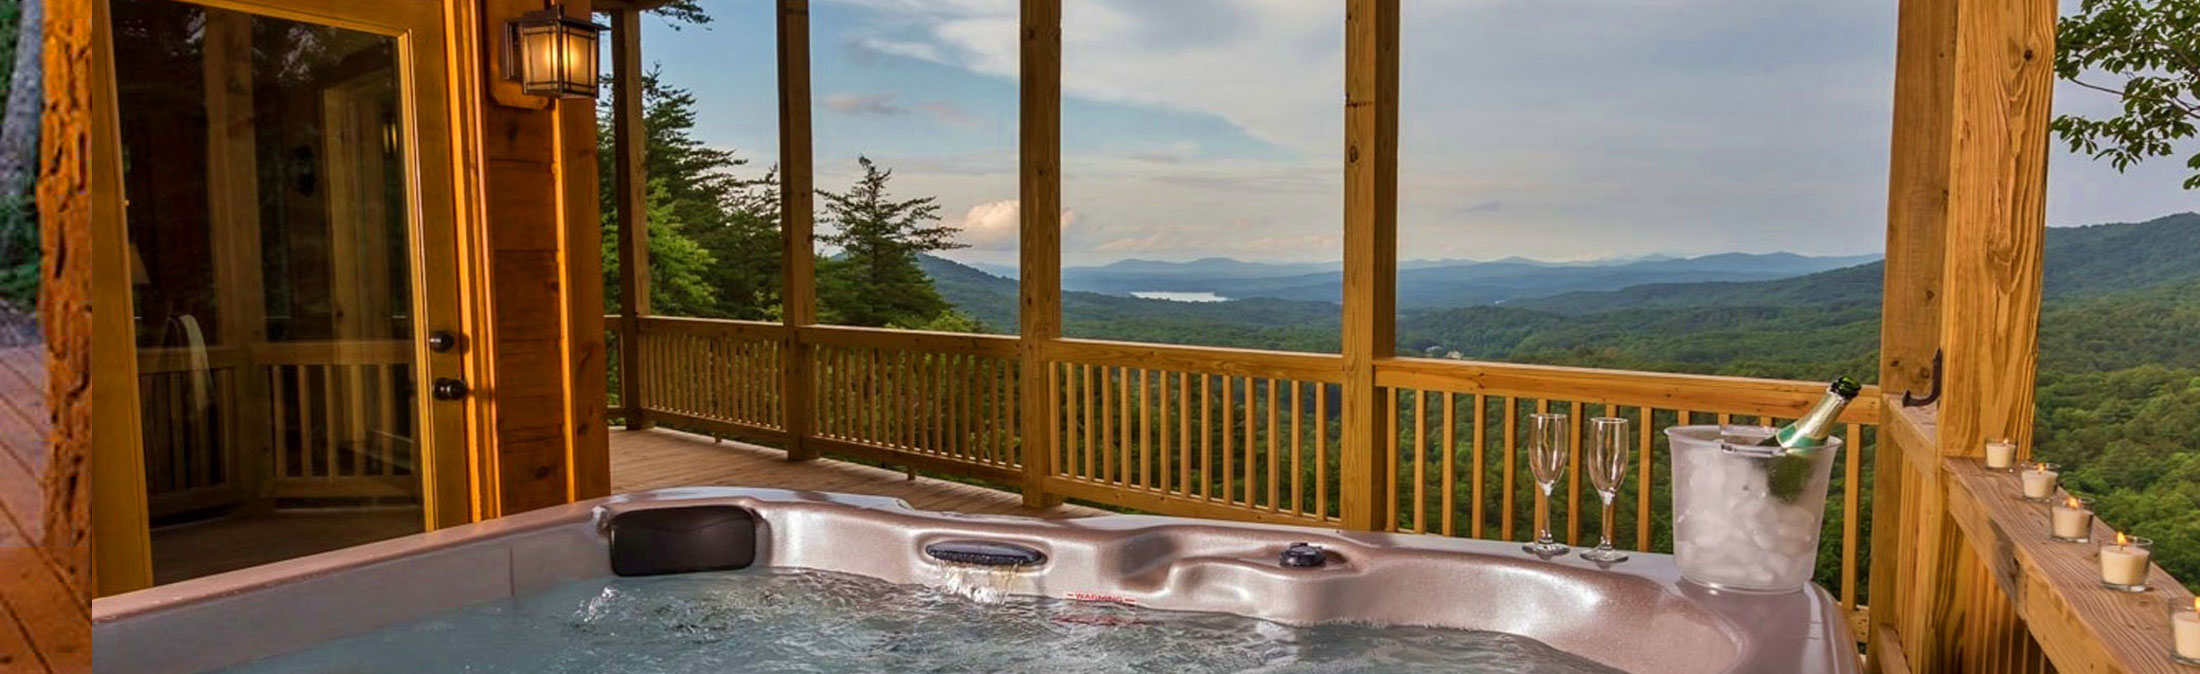 Paradise Pool and Spa JLX Hot Tub collection